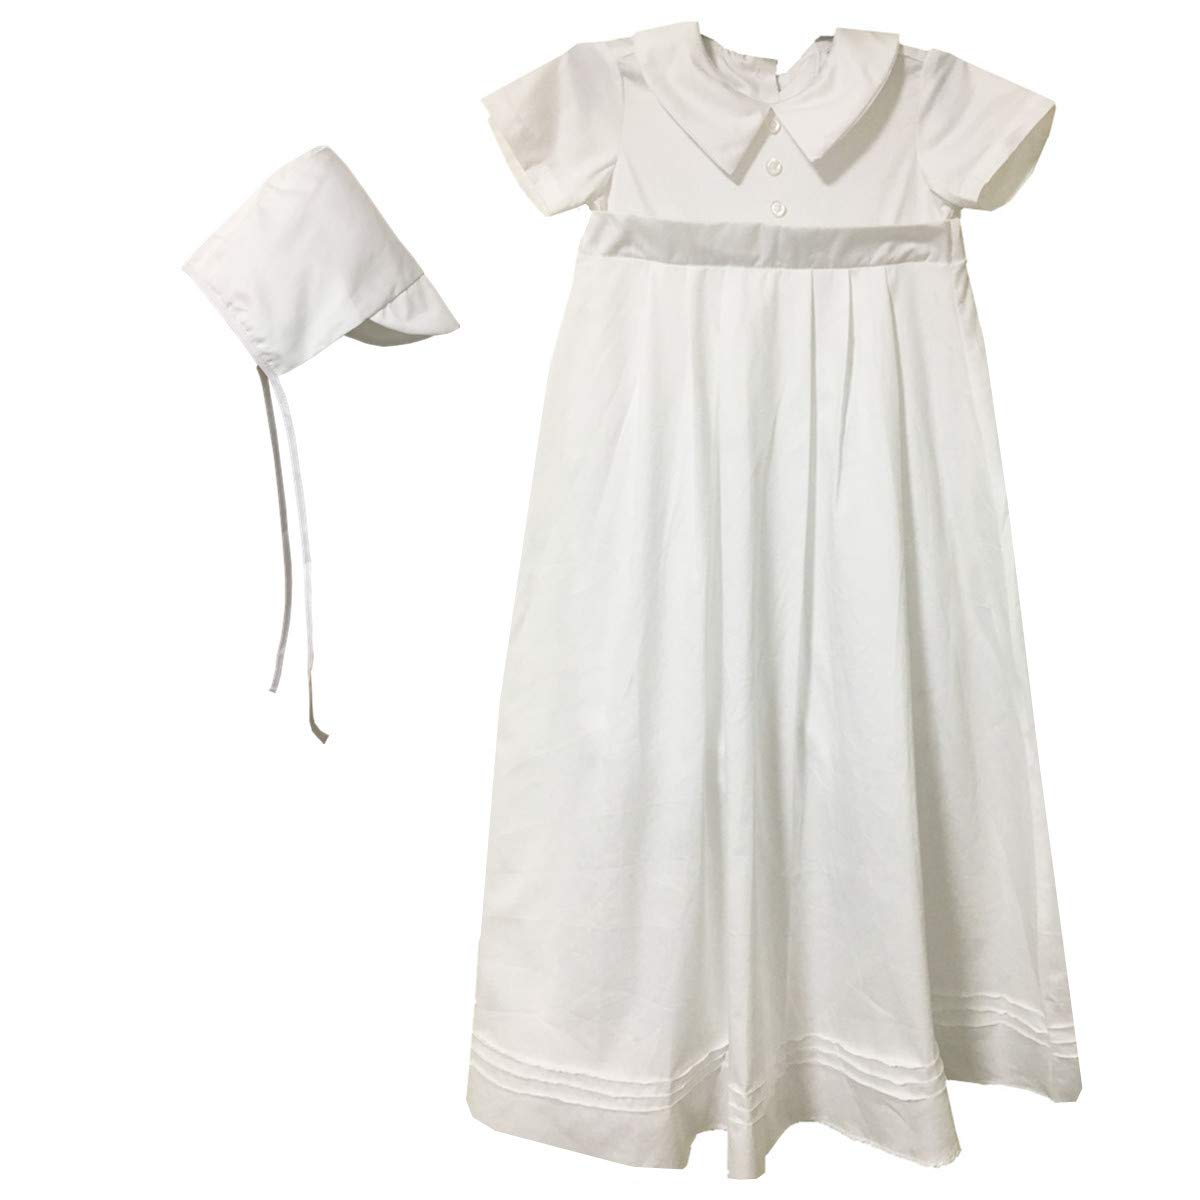 BBVESTIDO Baptism Christeng Gown with Romper for Baby Boys Girls White